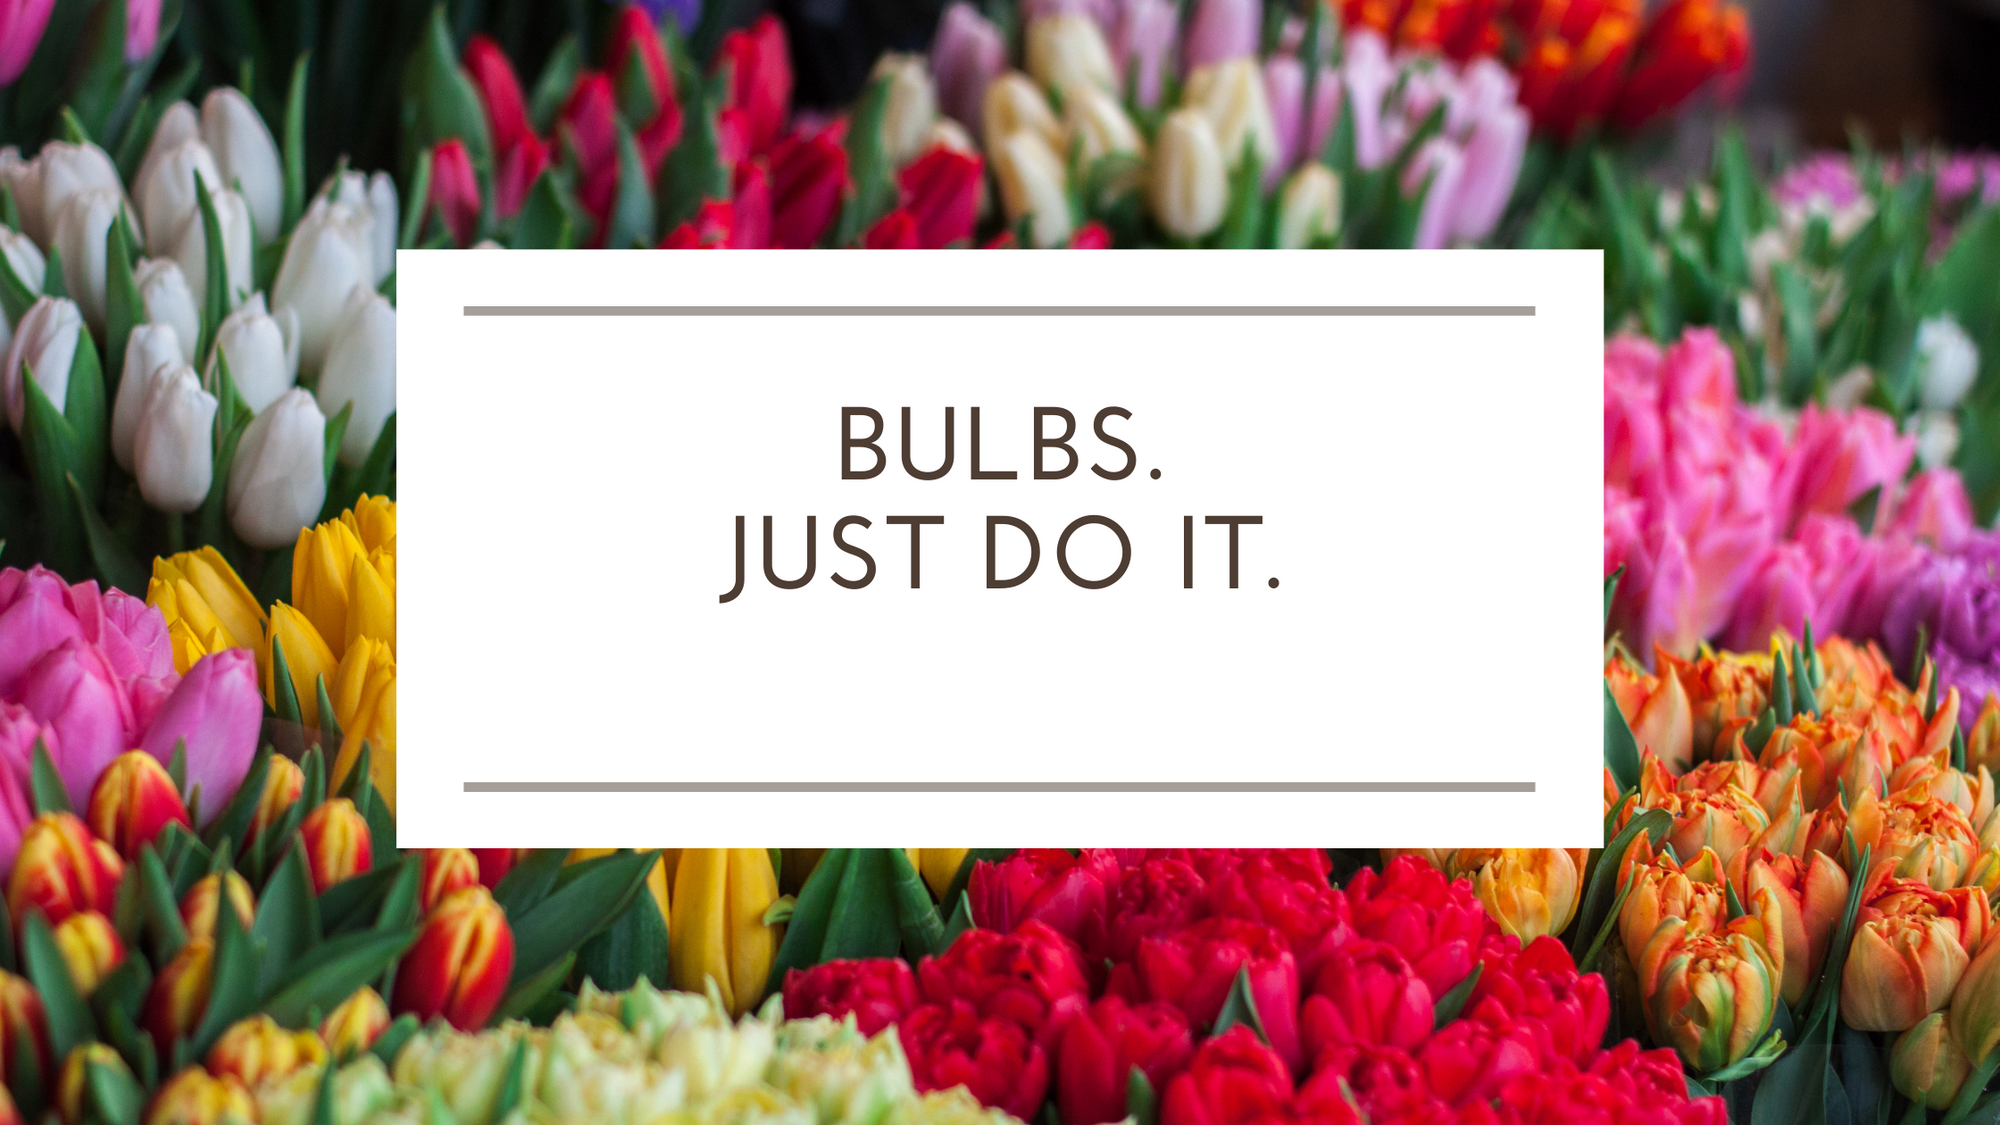 Bulbs. Just do it.